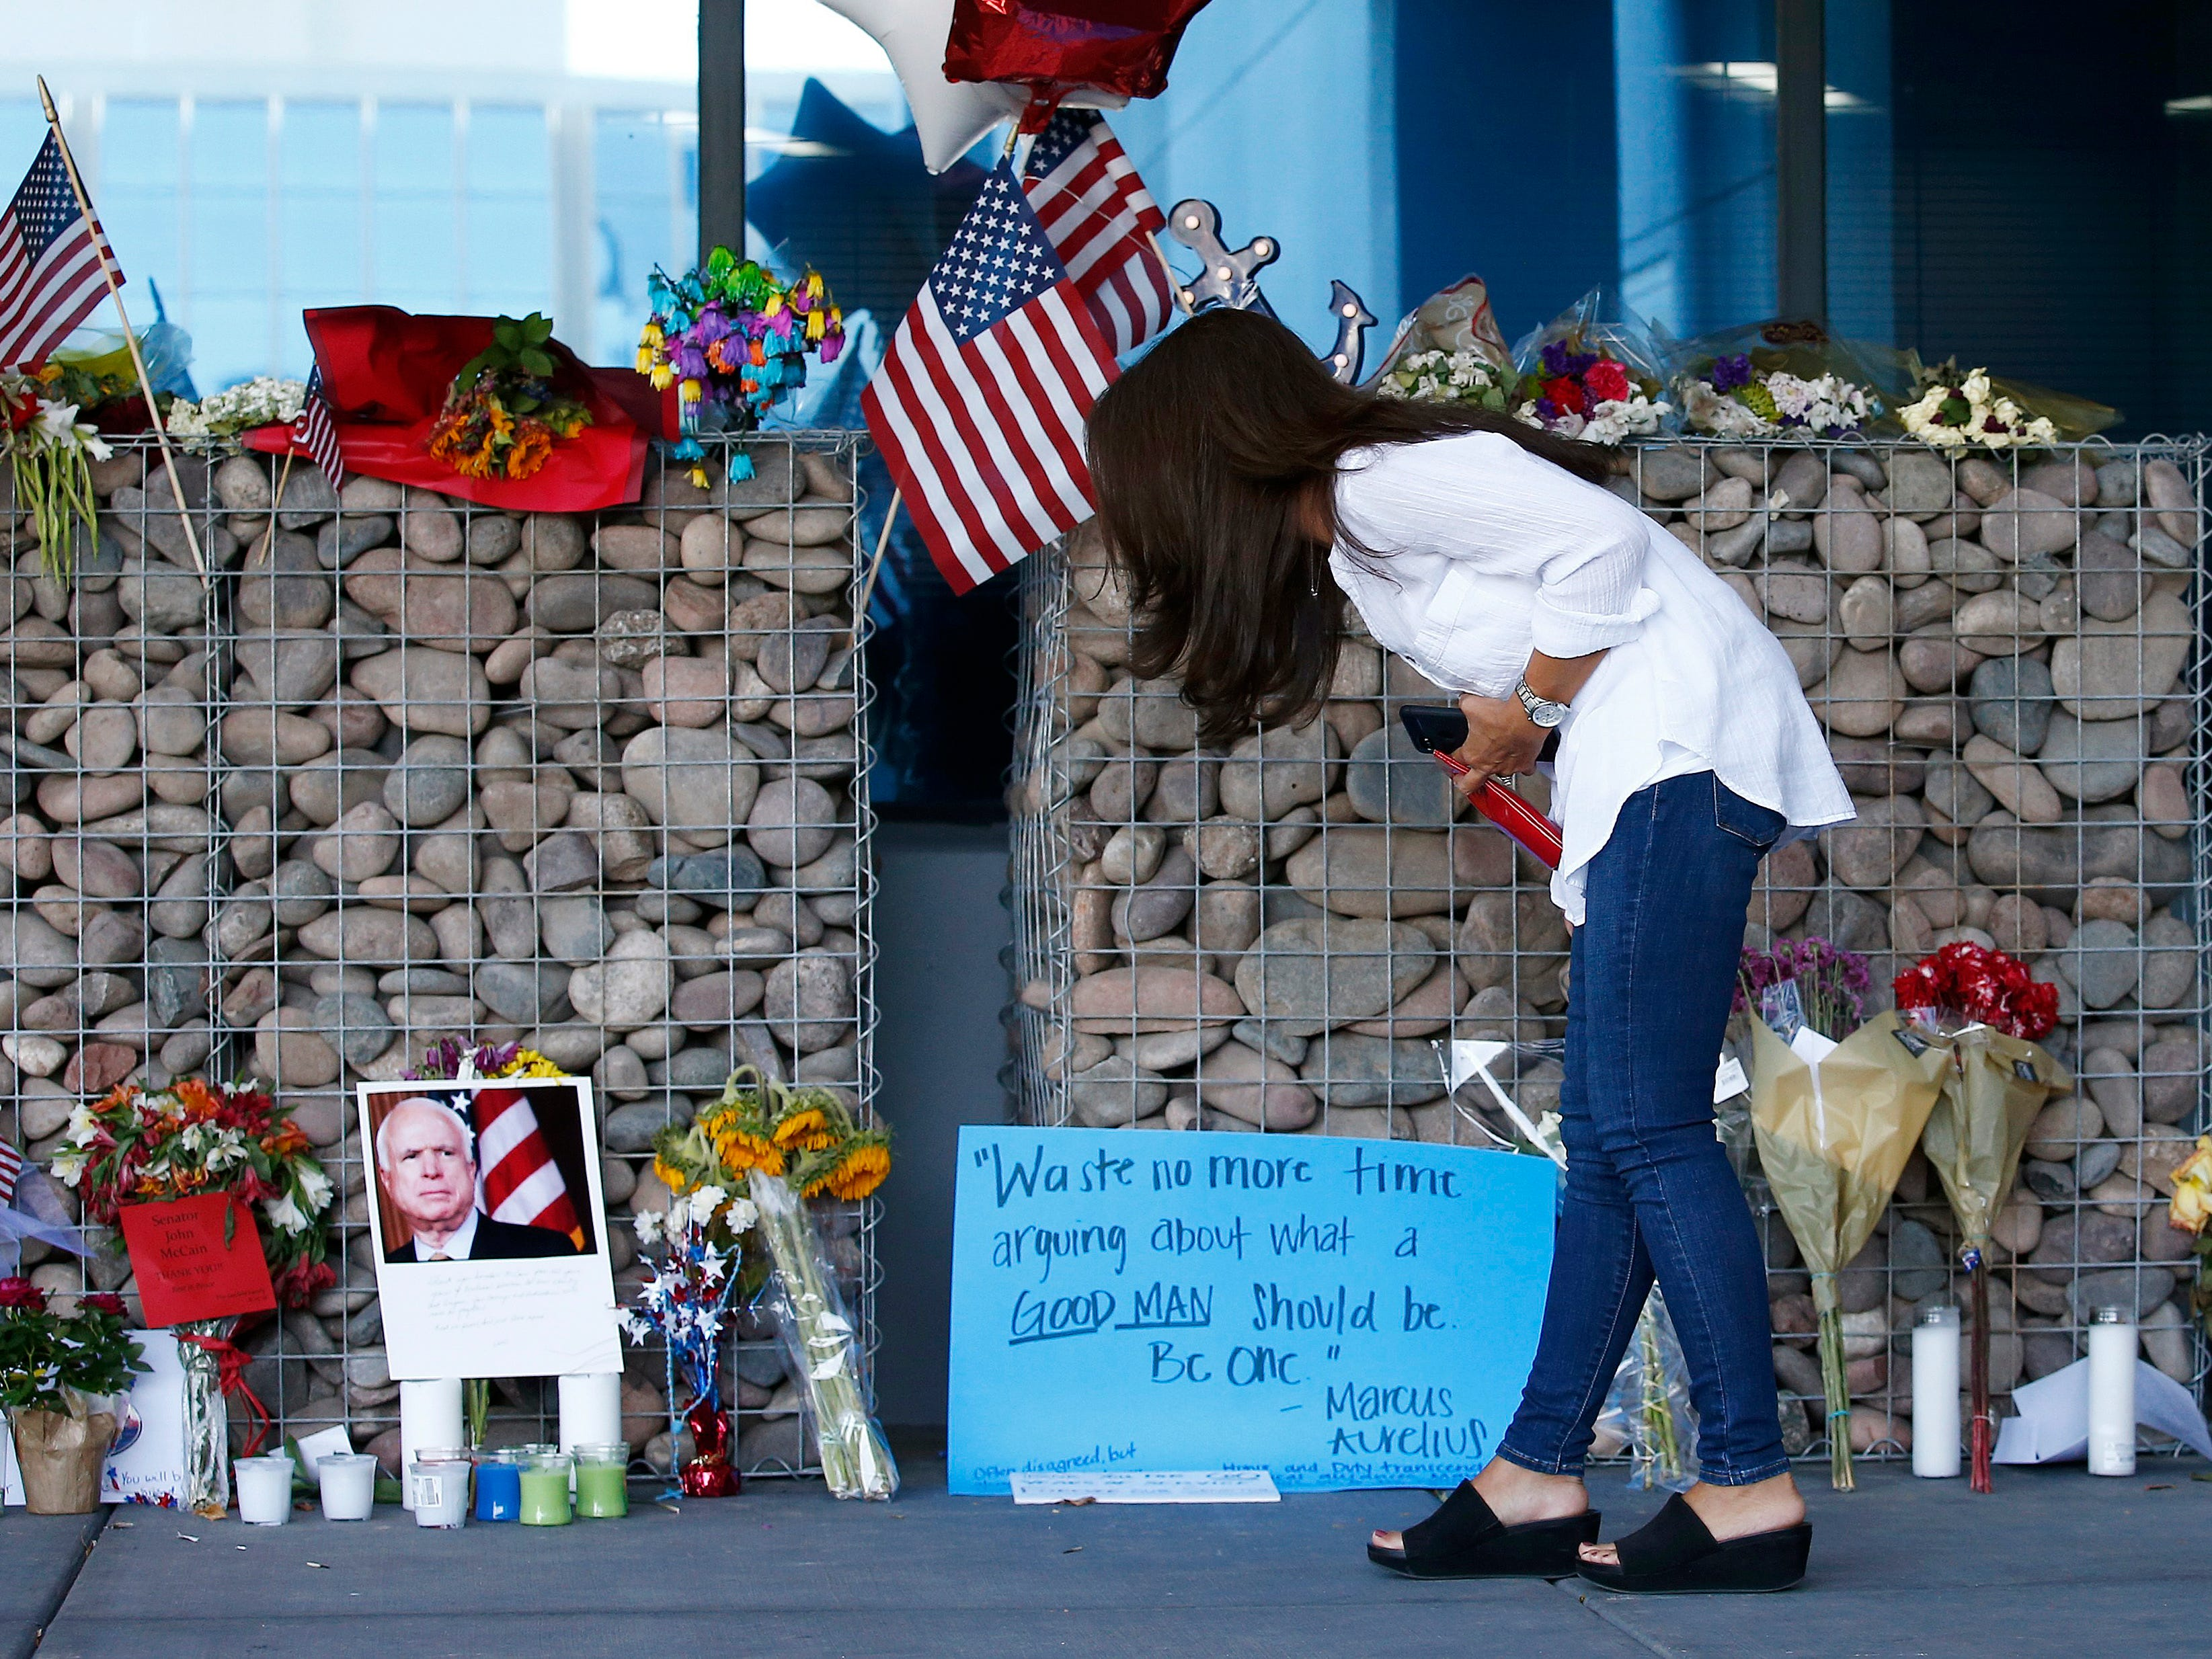 Thu-Van Cunningham, of Phoenix, reads messages left by well-wishers as she visits a makeshift memorial in honor of the late Arizona Republican Sen. John McCain at McCain's office Monday, Aug. 27, 2018, in Phoenix. McCain, the war hero who became the GOP's standard-bearer in the 2008 election, died at the age of 81, Saturday, Aug. 25, 2018, after battling brain cancer.